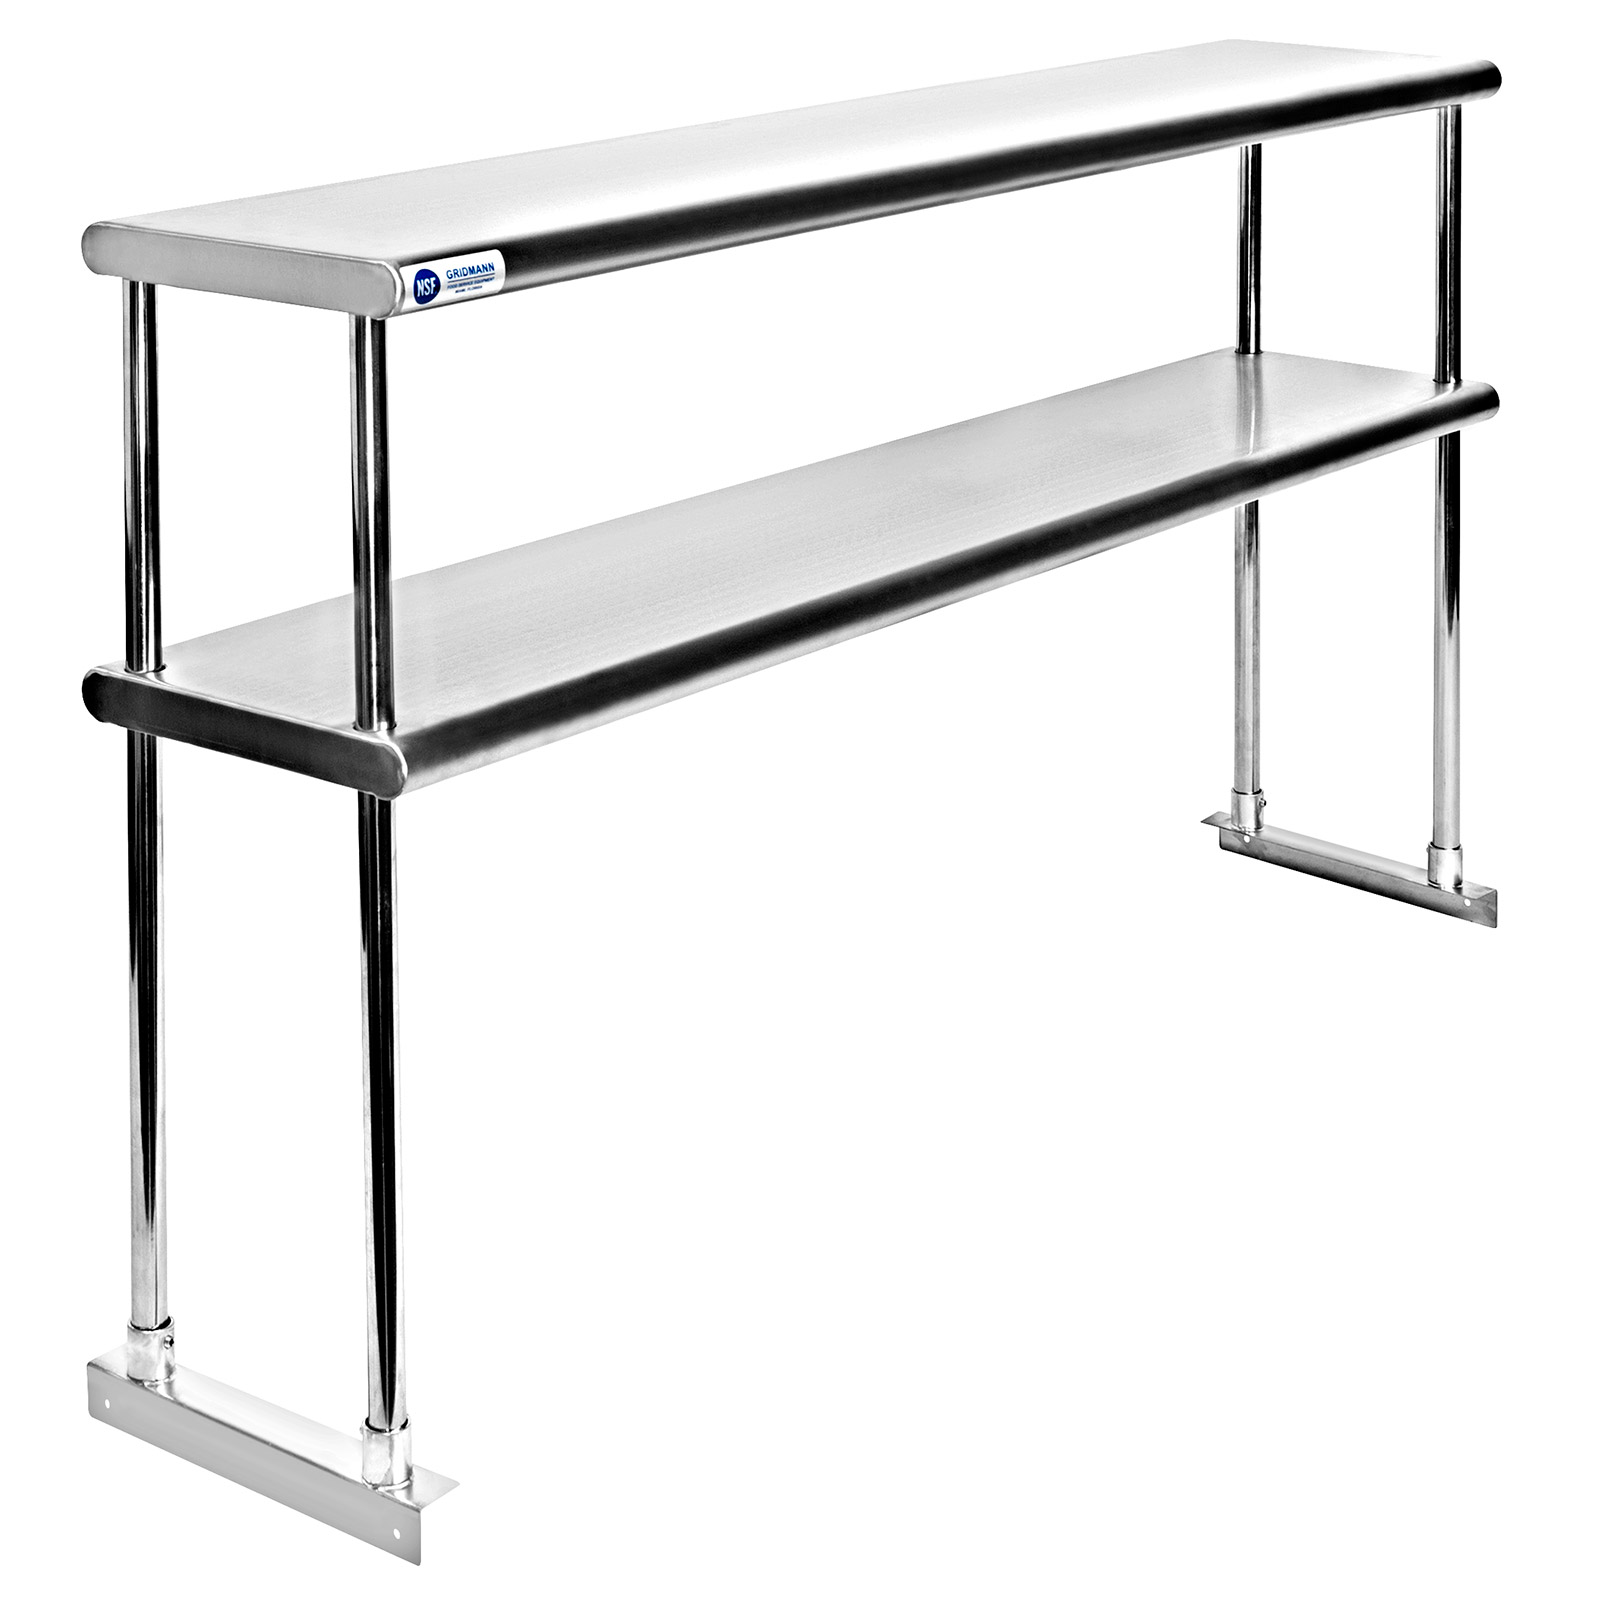 Industrial Kitchen Prep Table: Commercial Stainless Steel Kitchen Prep Table With Double